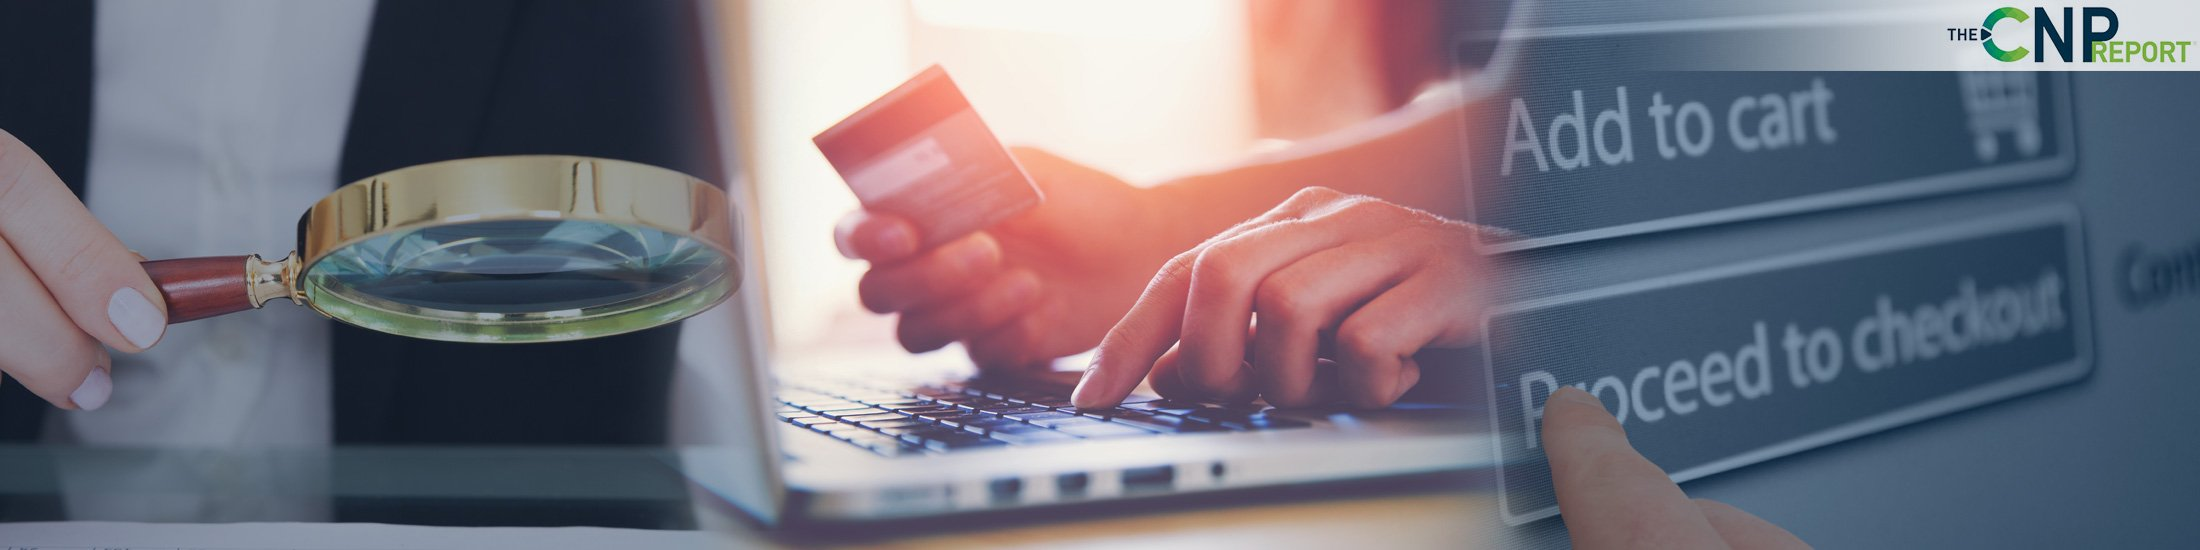 Digital Merchants Too Focused on Fraud at Checkout: Report